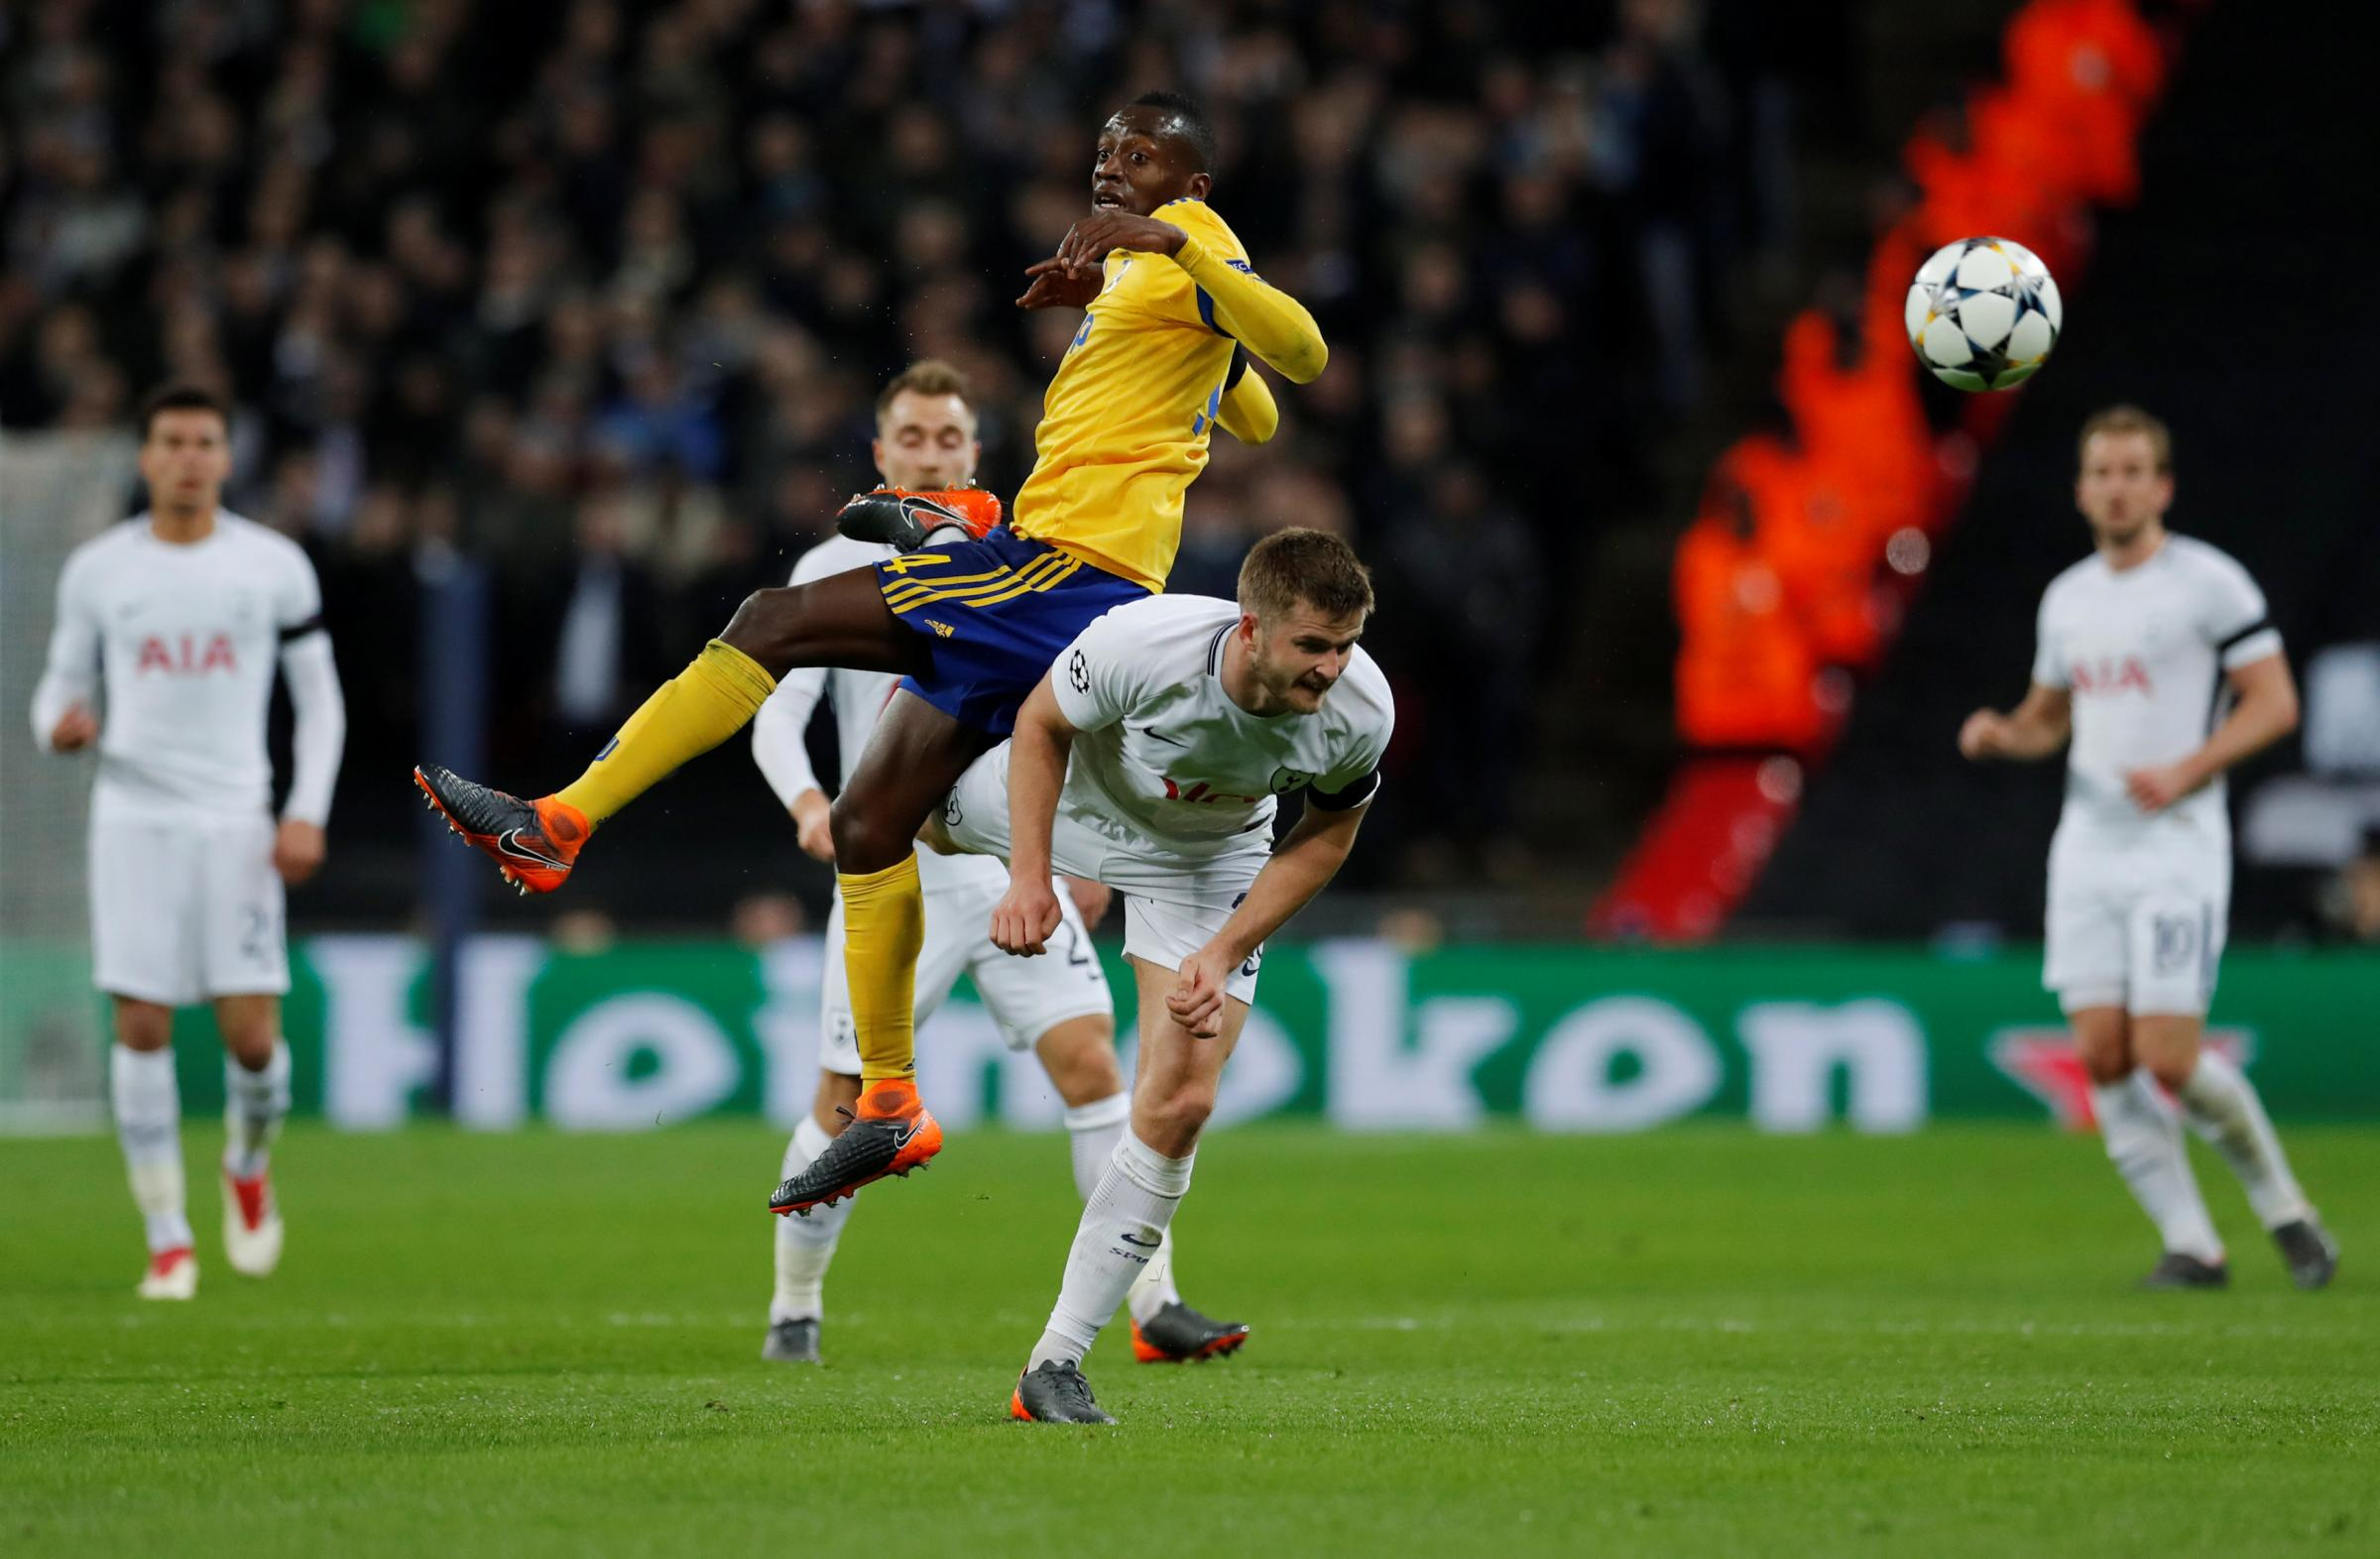 Eric Dier is challenged by Blaise Matuidi in Spurs' Champions League defeat to Juventus. Picture: Action Images